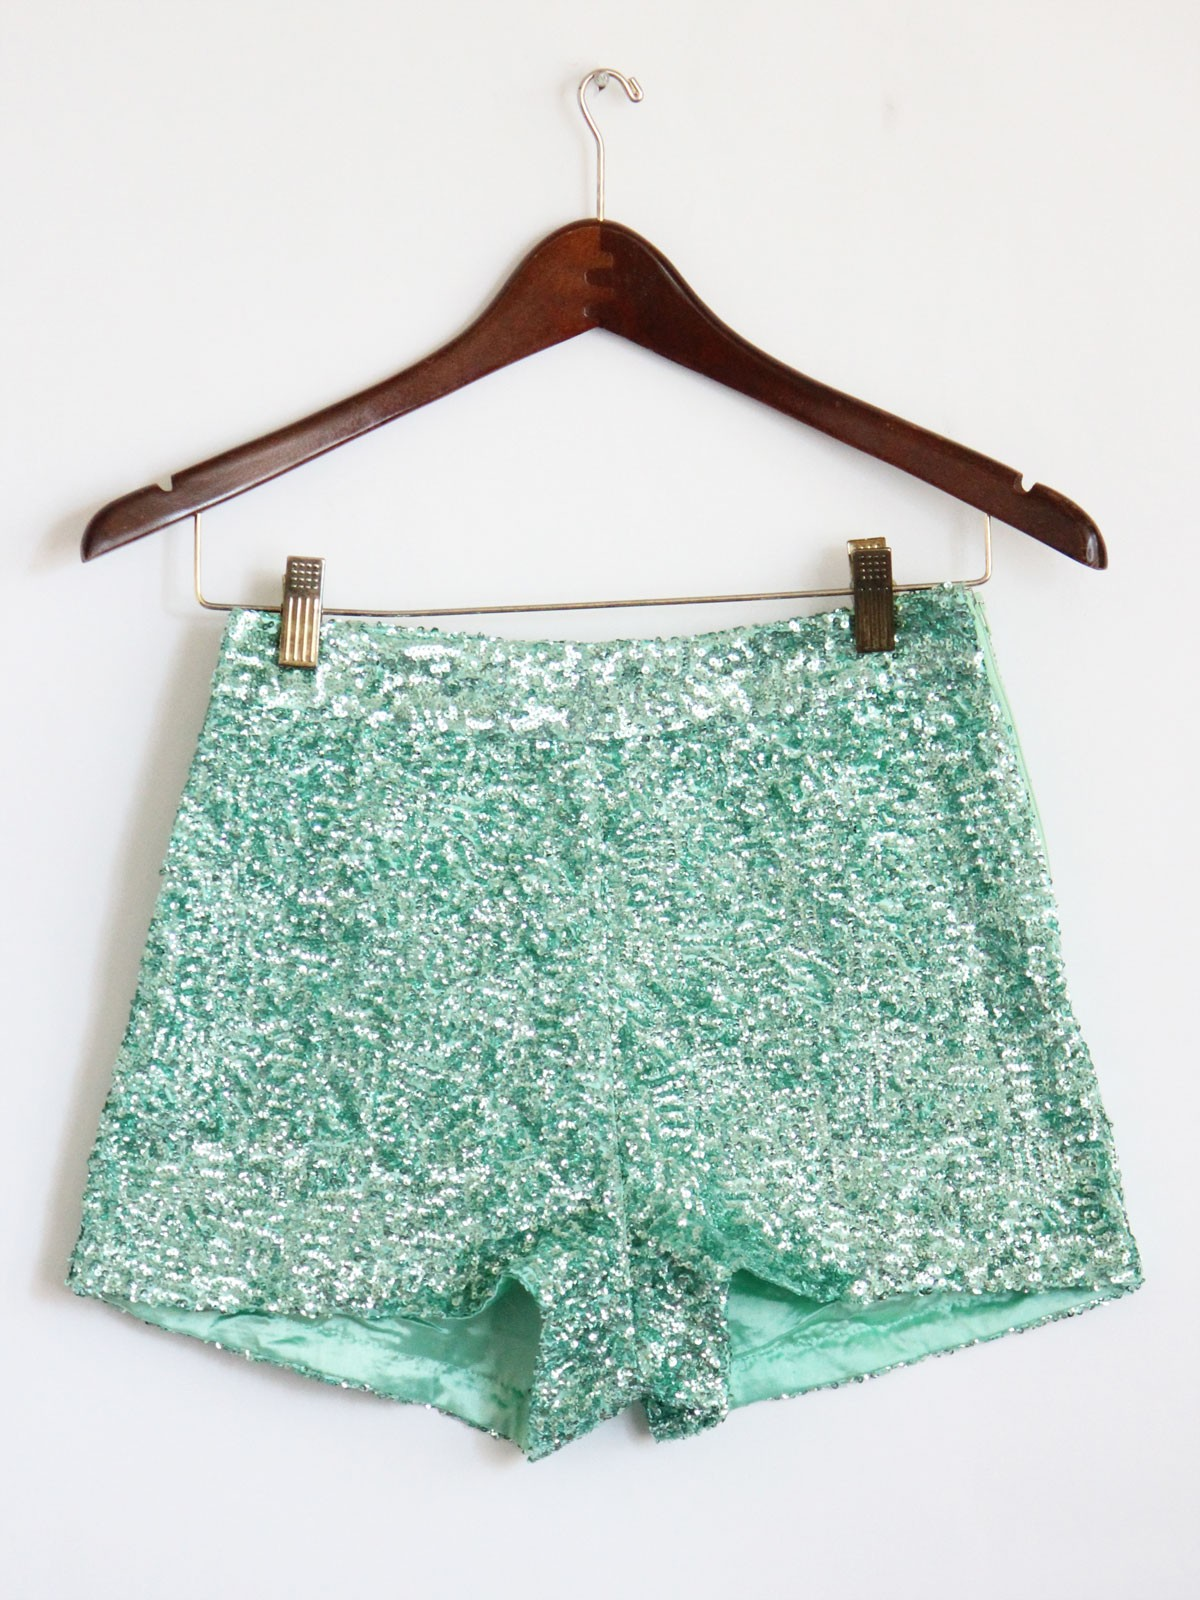 Sparkly Green Shorts June 2017